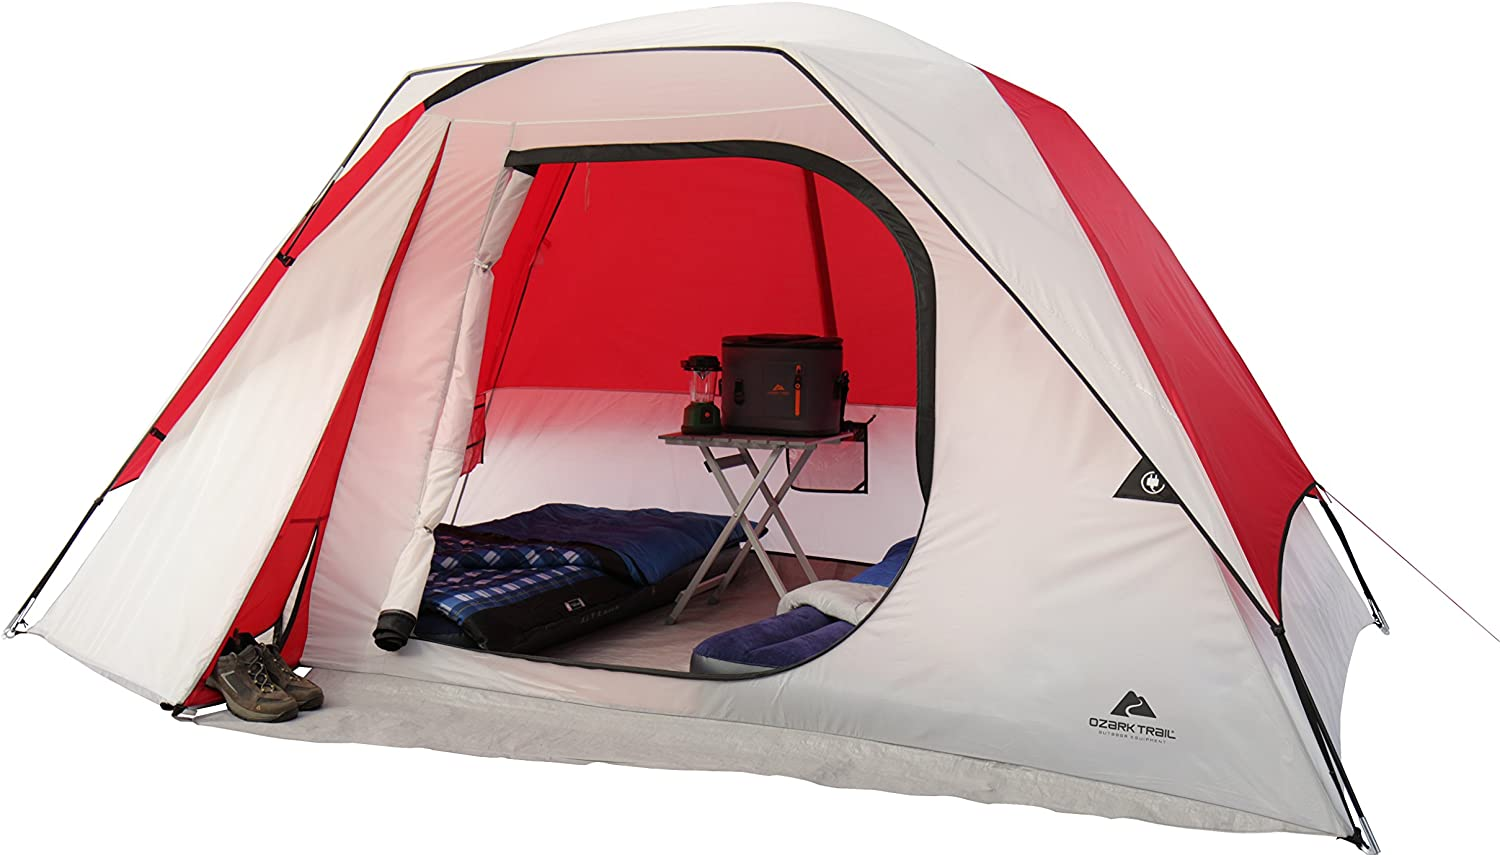 Ozark Trail Family Cabin Tent (WhiteRed, 6 Person): Amazon